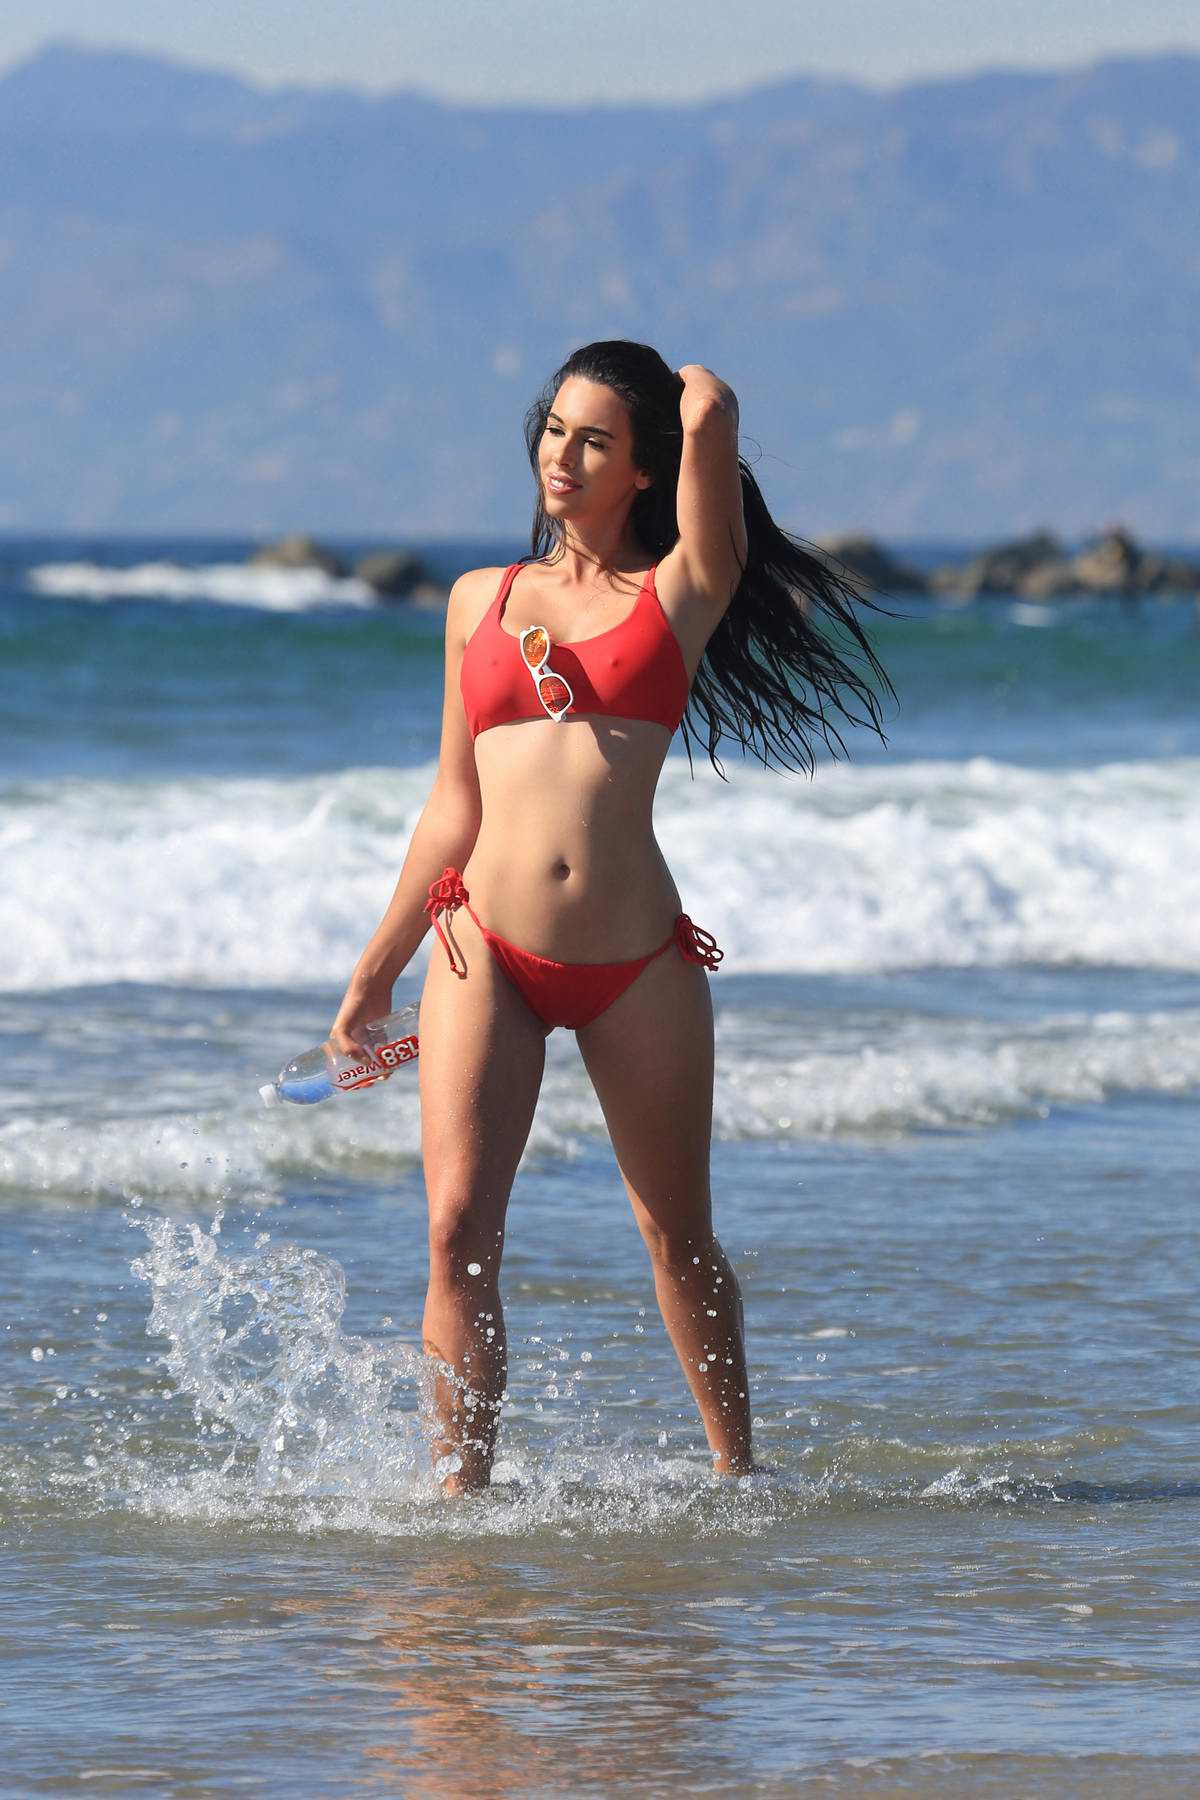 Tania Marie wearing a red bikini as she hits the beach during a 138 Water photoshoot in Venice beach, Los Angeles